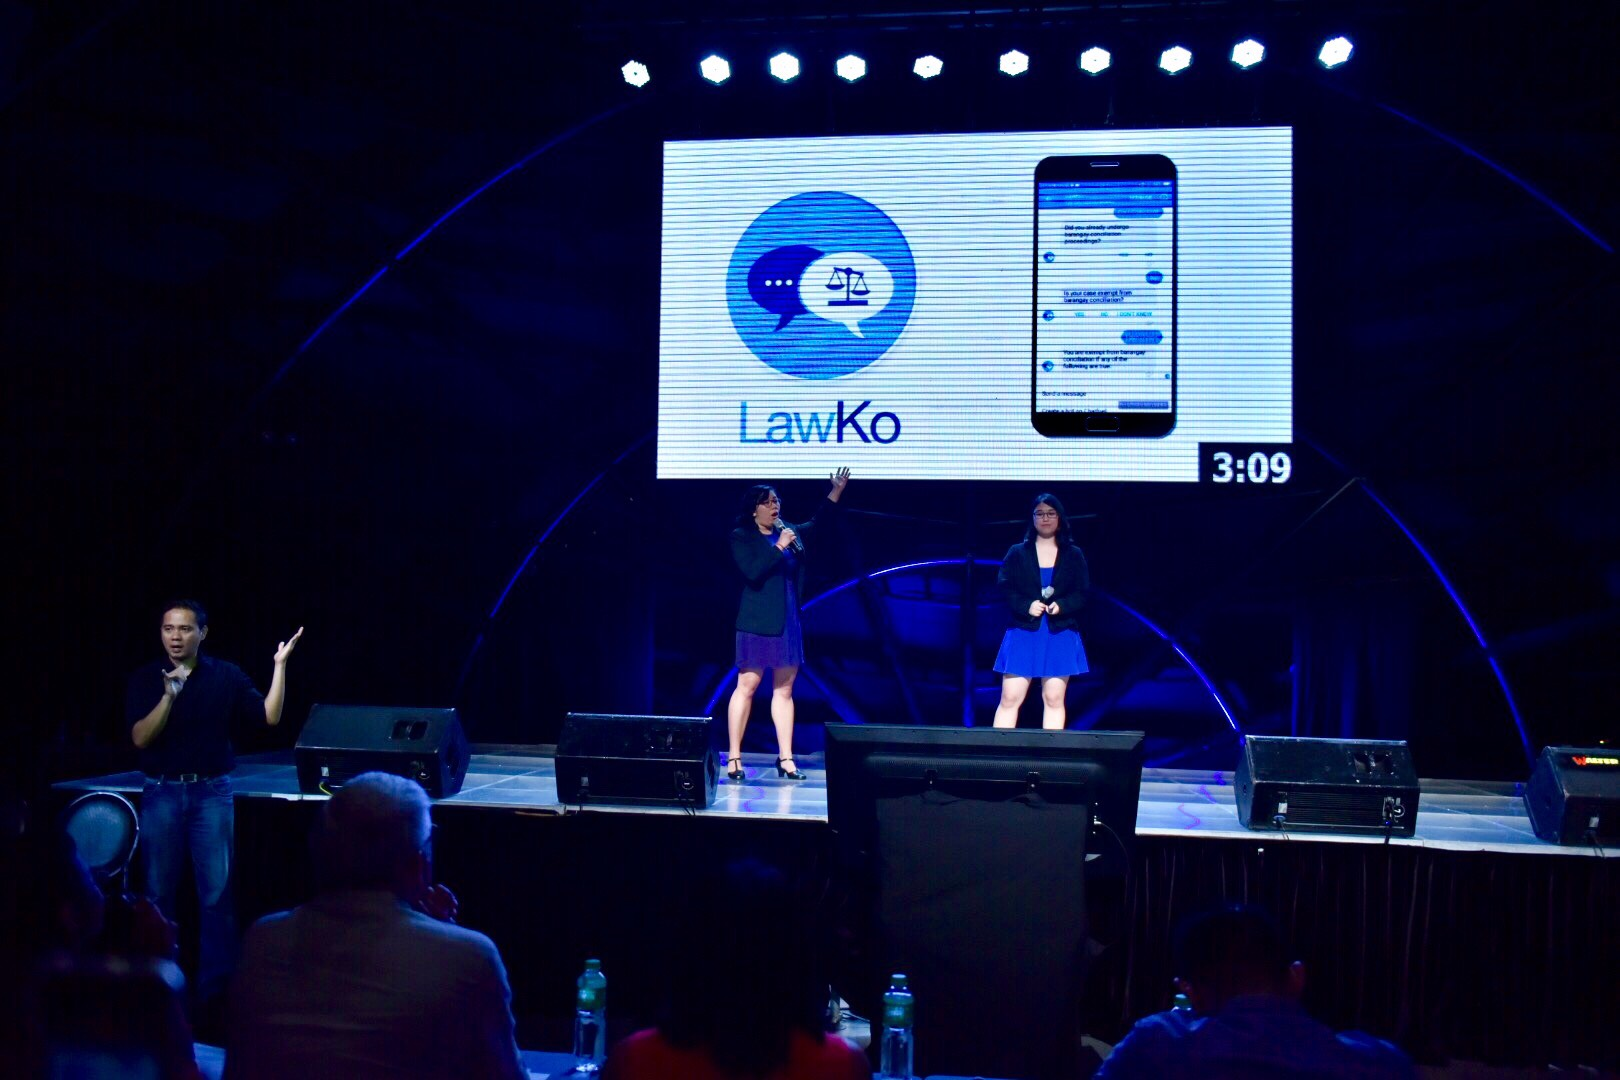 WINNER. Alex Austria and Keisha Mayuga talk about their project, LawKo, during Rappler's Social Good Summit on September 16, 2017.